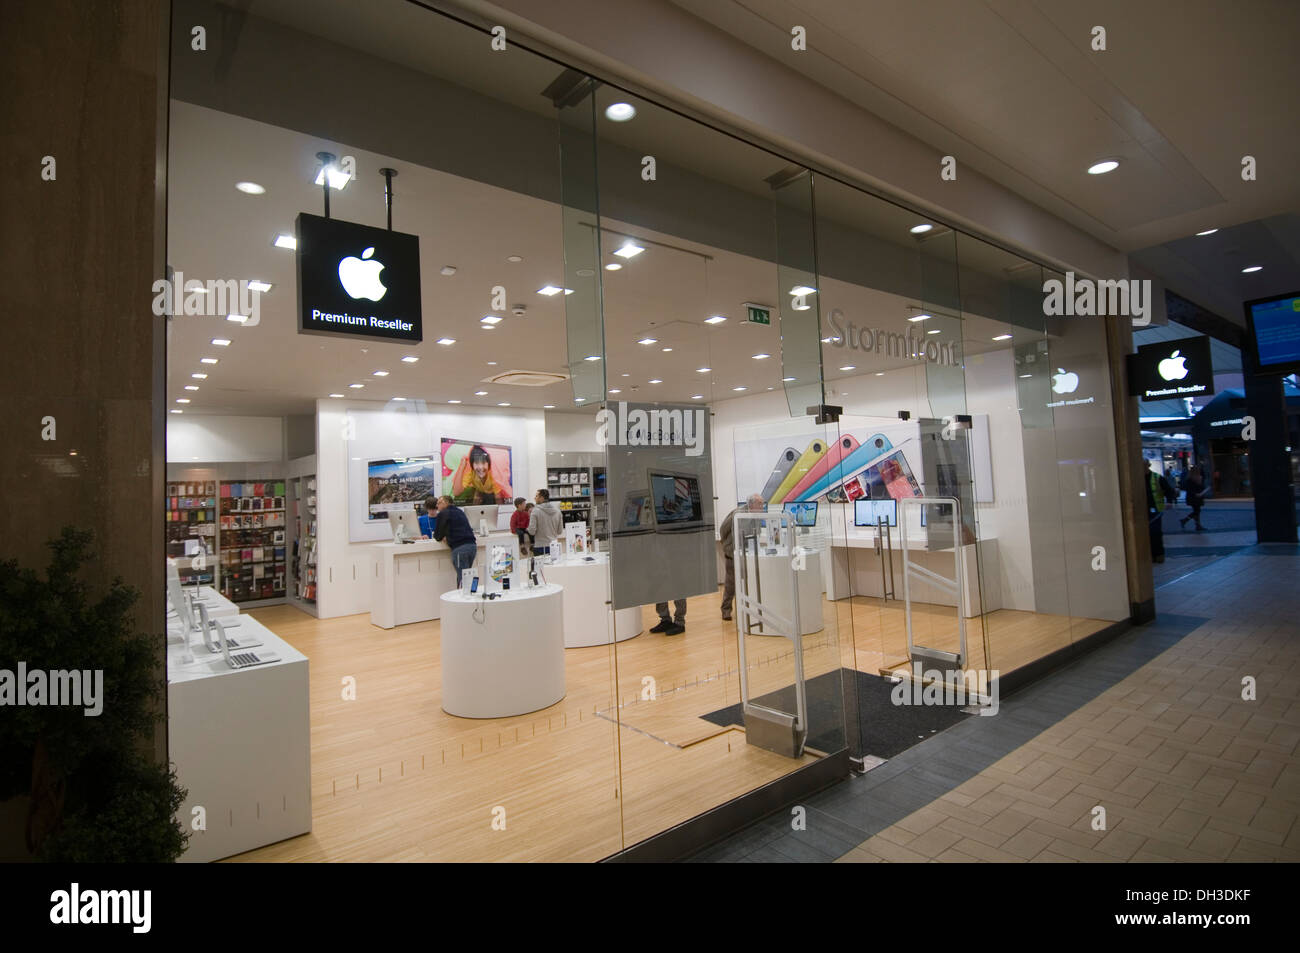 apple reseller computer computers store expert experts stores iphone i phone retail retailer retailers approved i pod ipod ipad - Stock Image